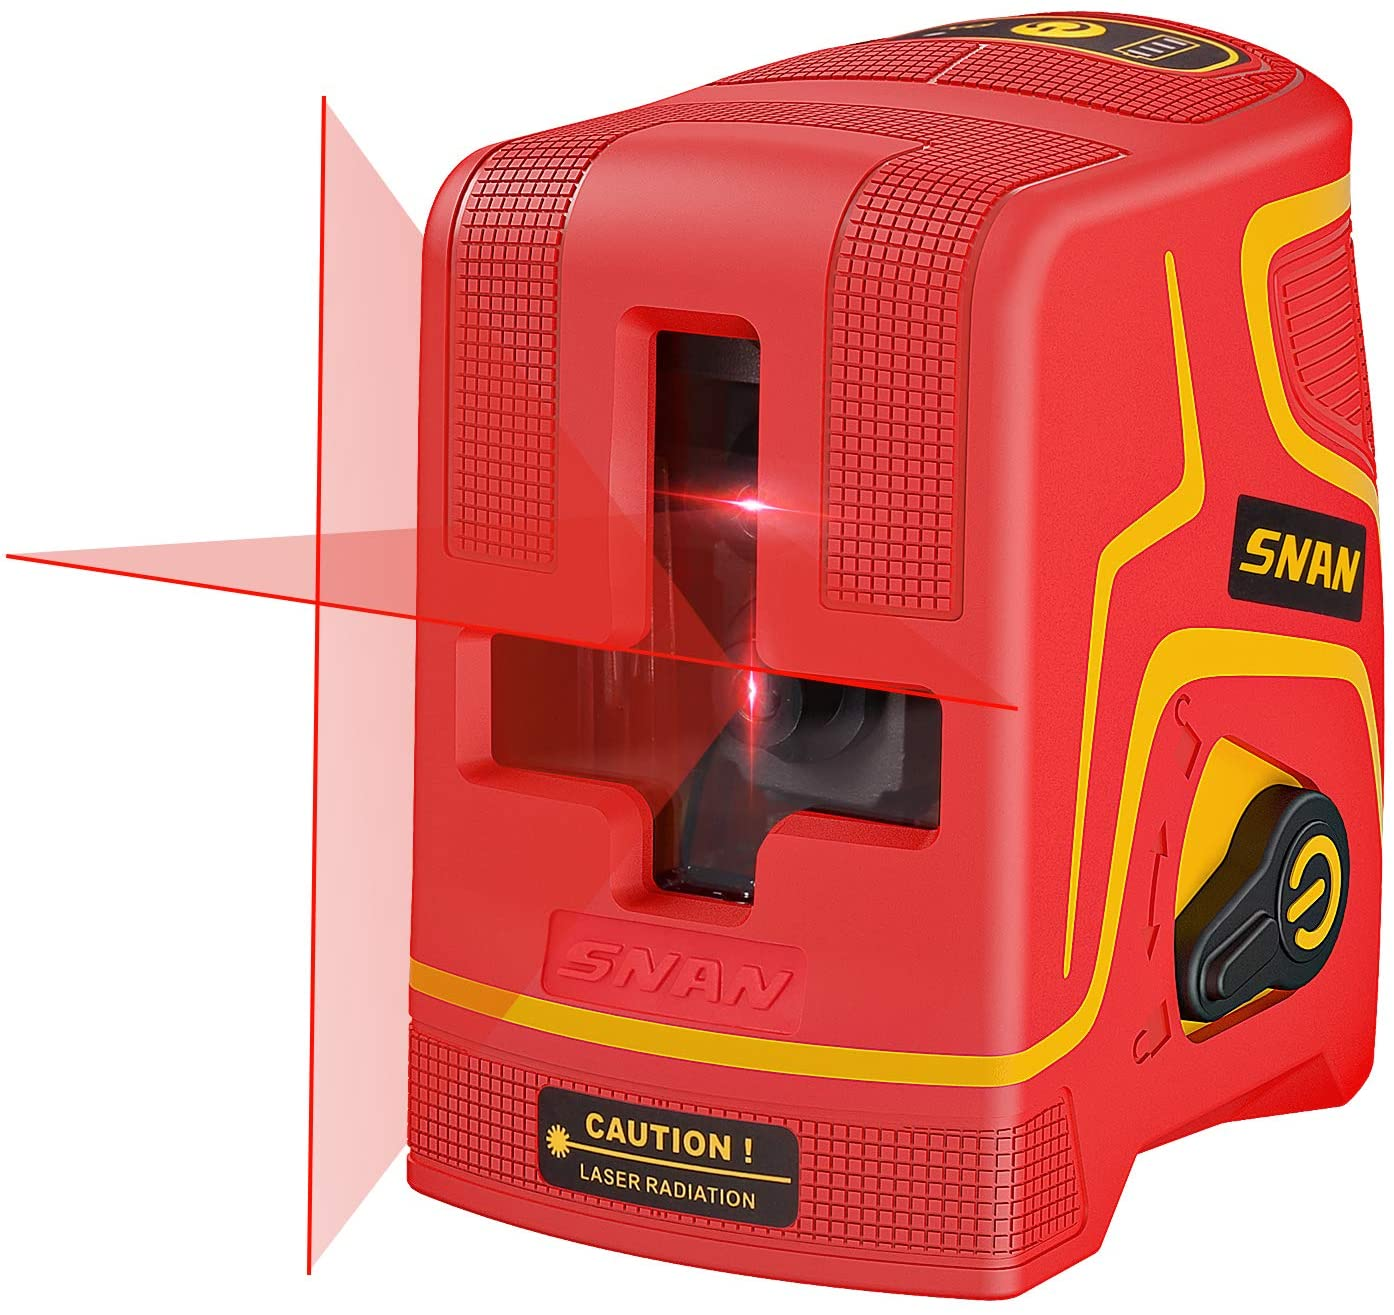 SNAN Laser Level Rechargeable, 98 Feet Line Laser,Three Kinds Of Line, Self-Leveling and Pulse Mode, Magnetic Base,Carrying Pouch,2200mAh Batteries Included,Laser Class: Class 2 <1mW power output